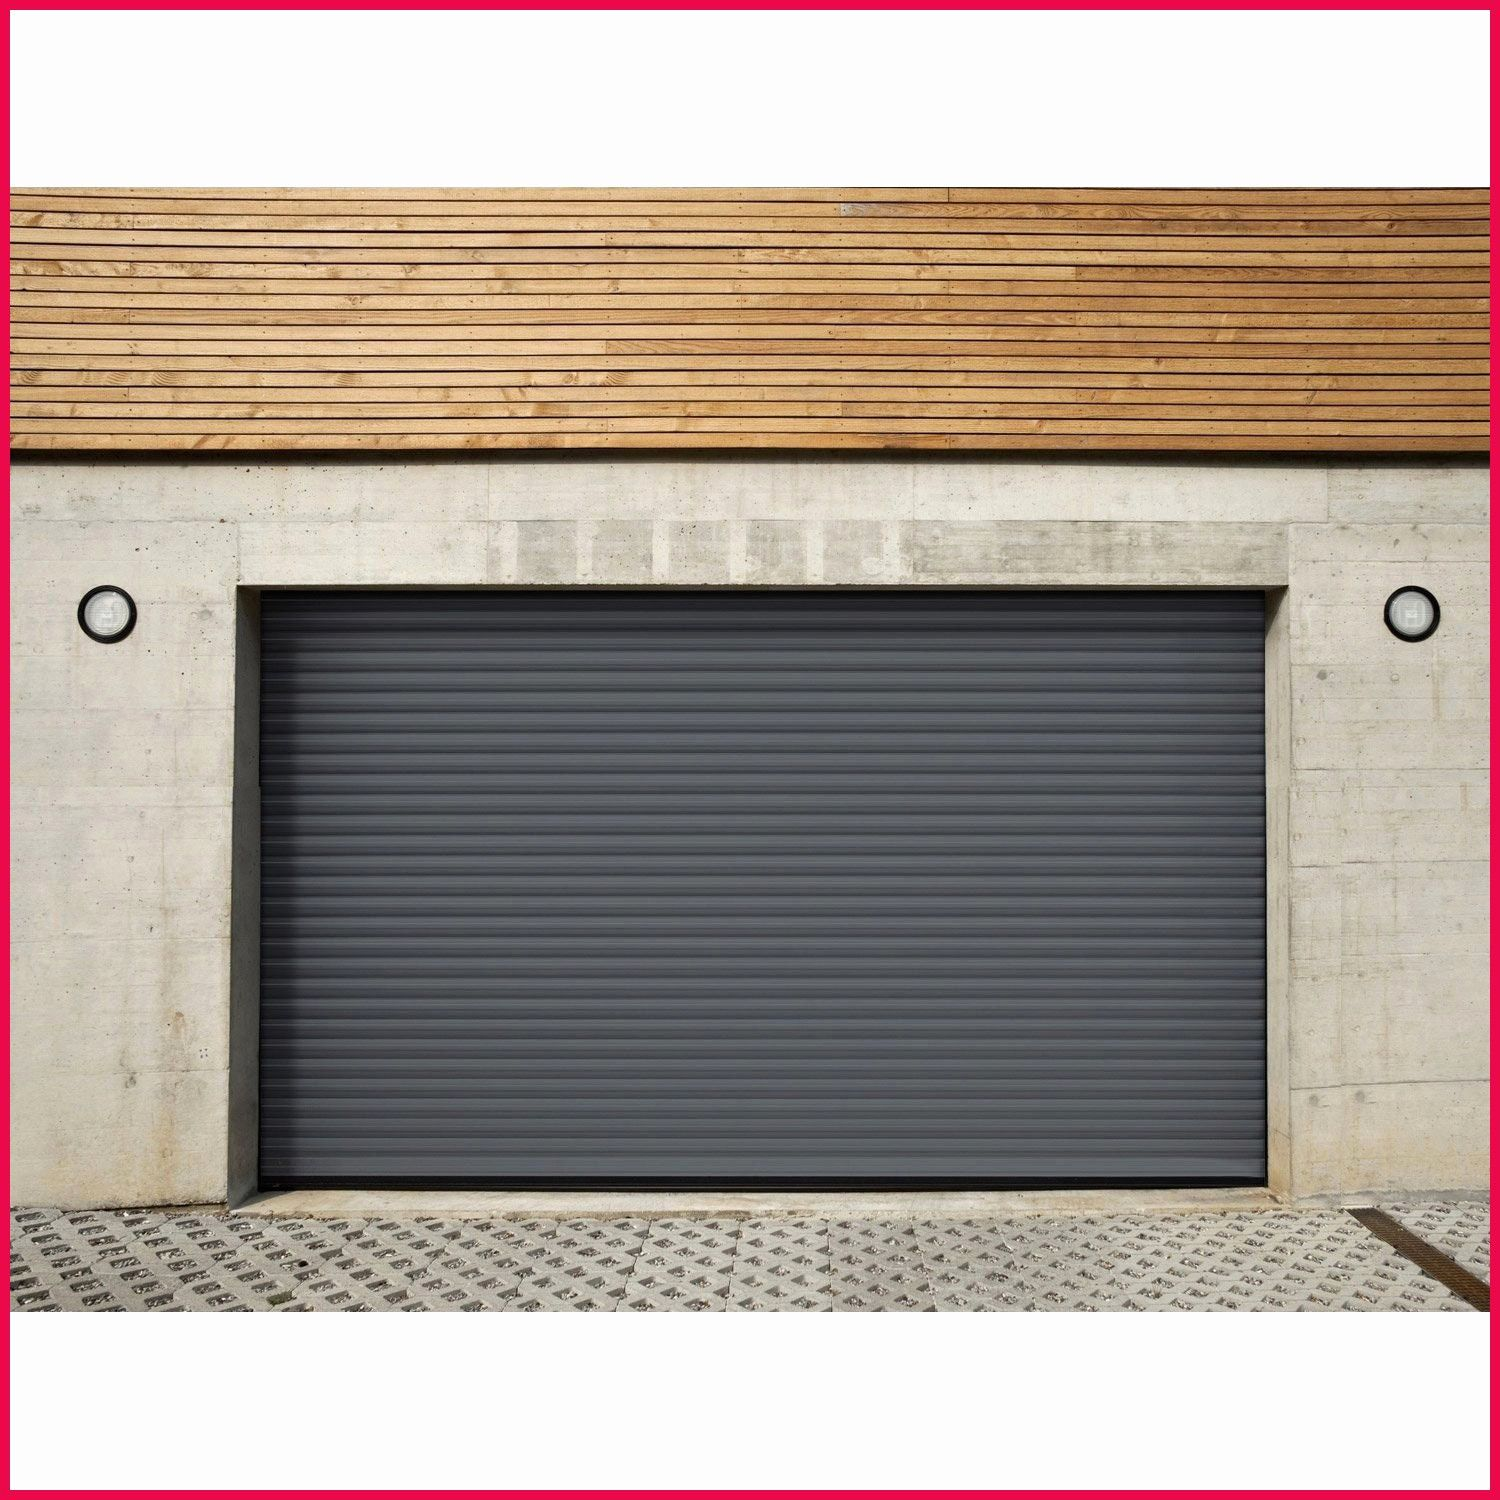 Best Of Porte De Garage Sectionnelle Motorisee Brico Depot Porte De Garage Sectionnelle Porte Garage Porte De Garage Basculante